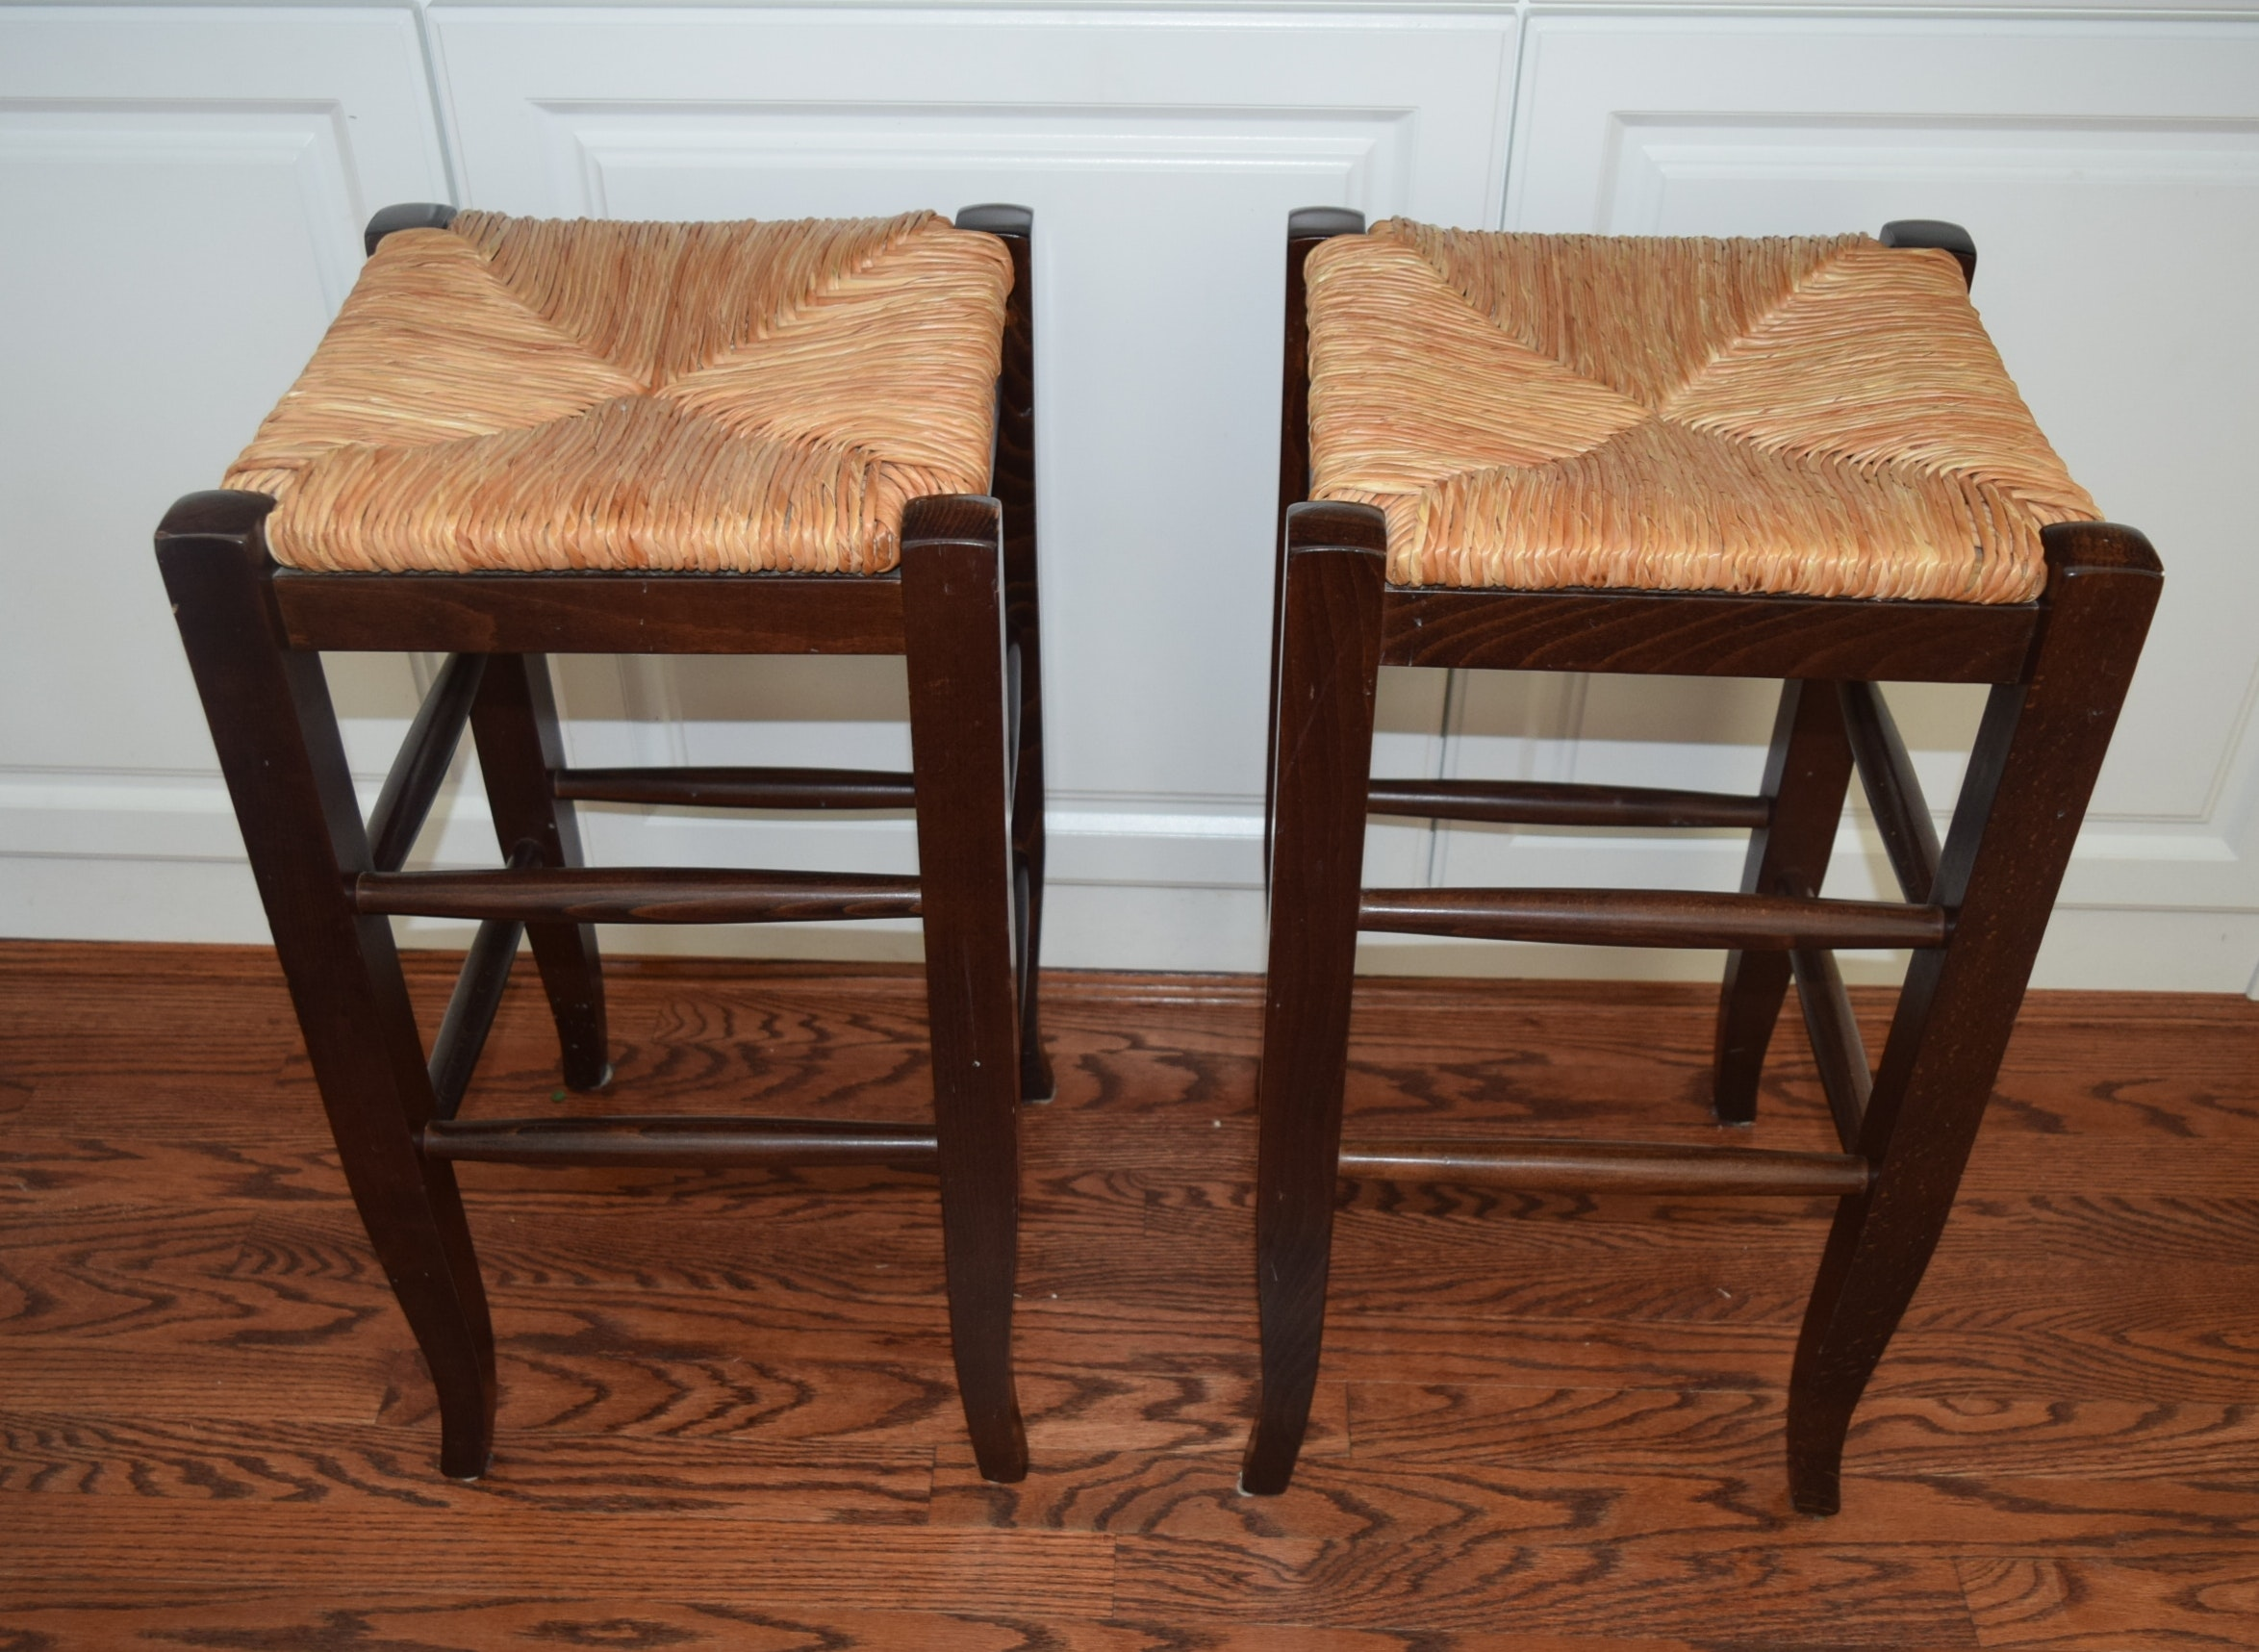 Pair of Pottery Barn quotNapoleonquot Rush Seat Counter Bar  : DSC0930JPGixlibrb 11 from www.ebth.com size 1400 x 1024 jpeg 241kB